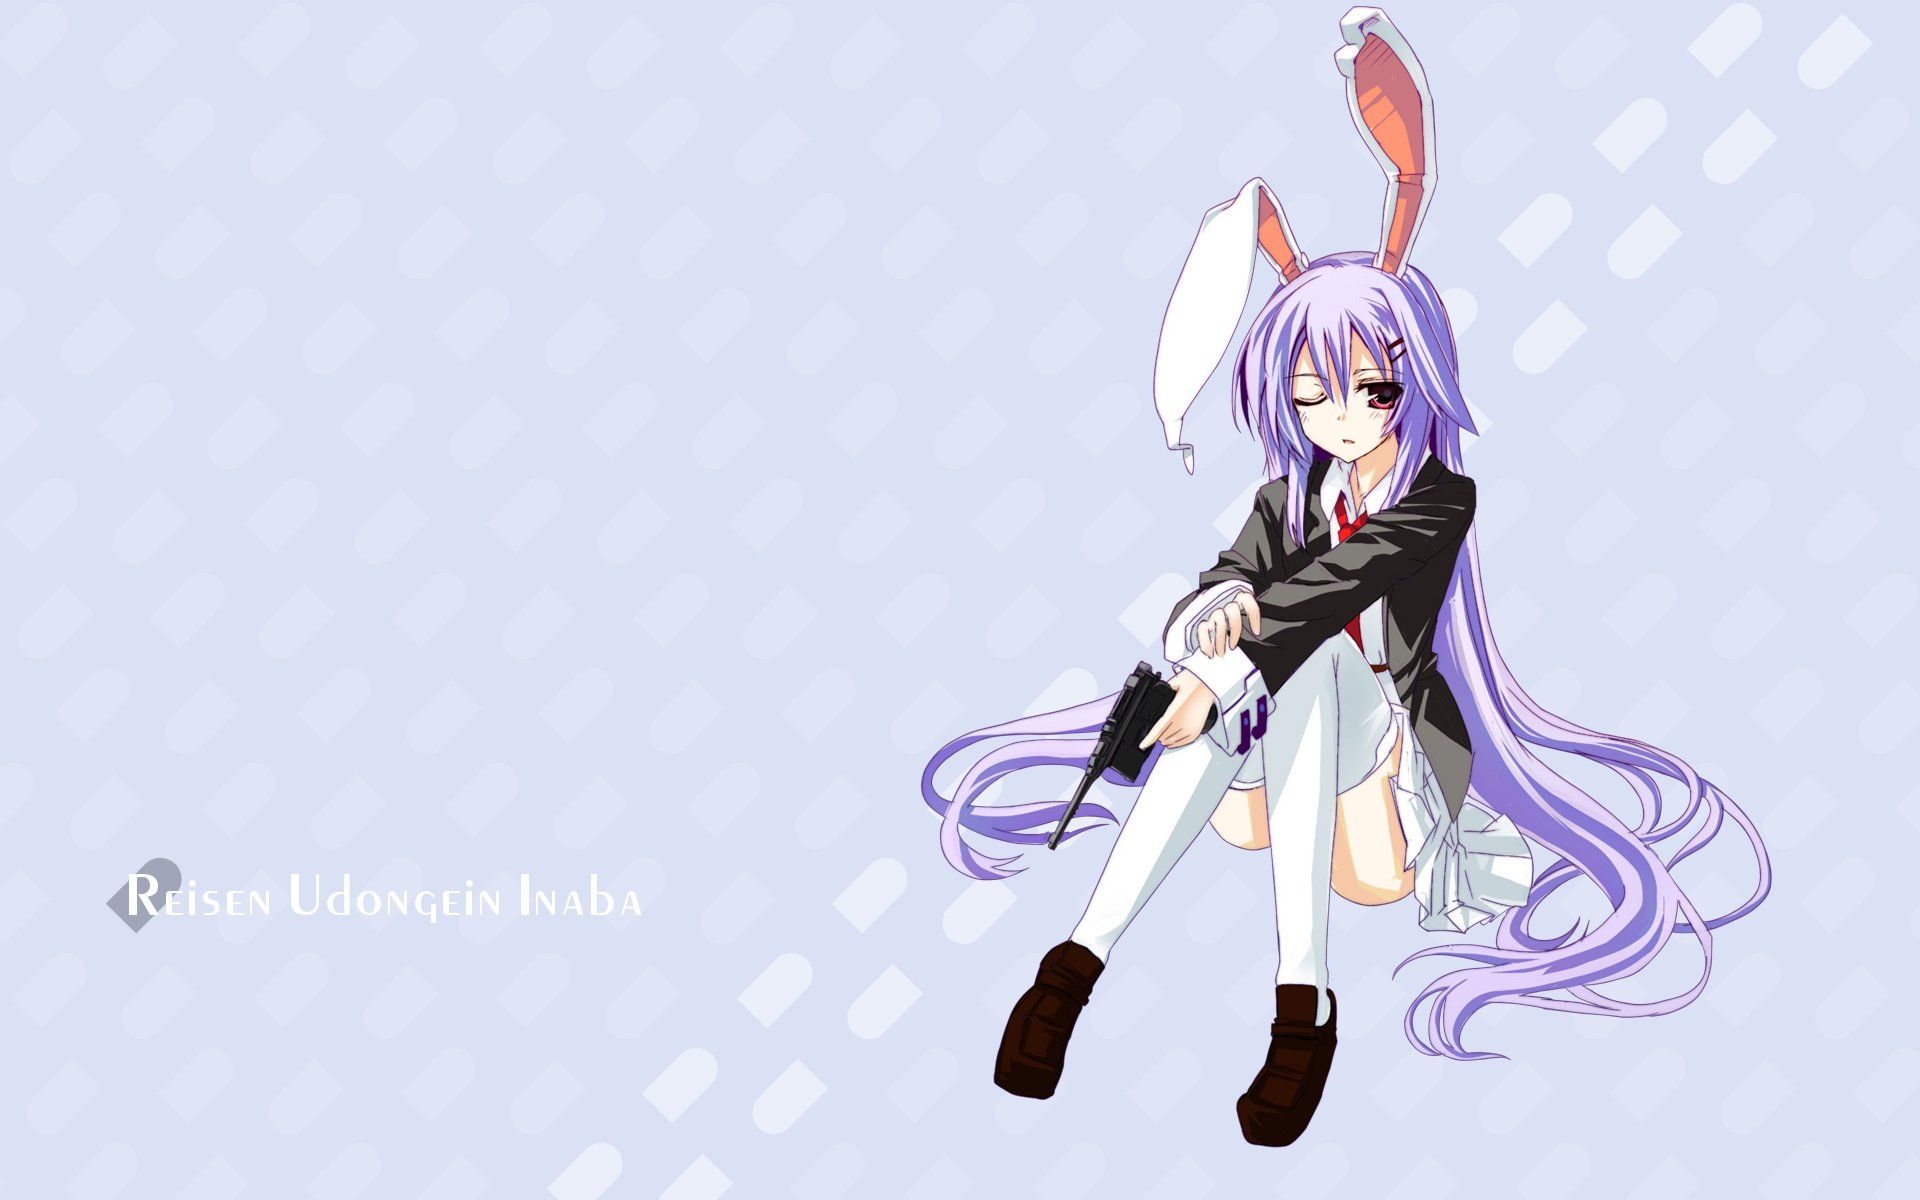 Download hd 1920x1200 Reisen Udongein Inaba desktop background ID:225356 for free